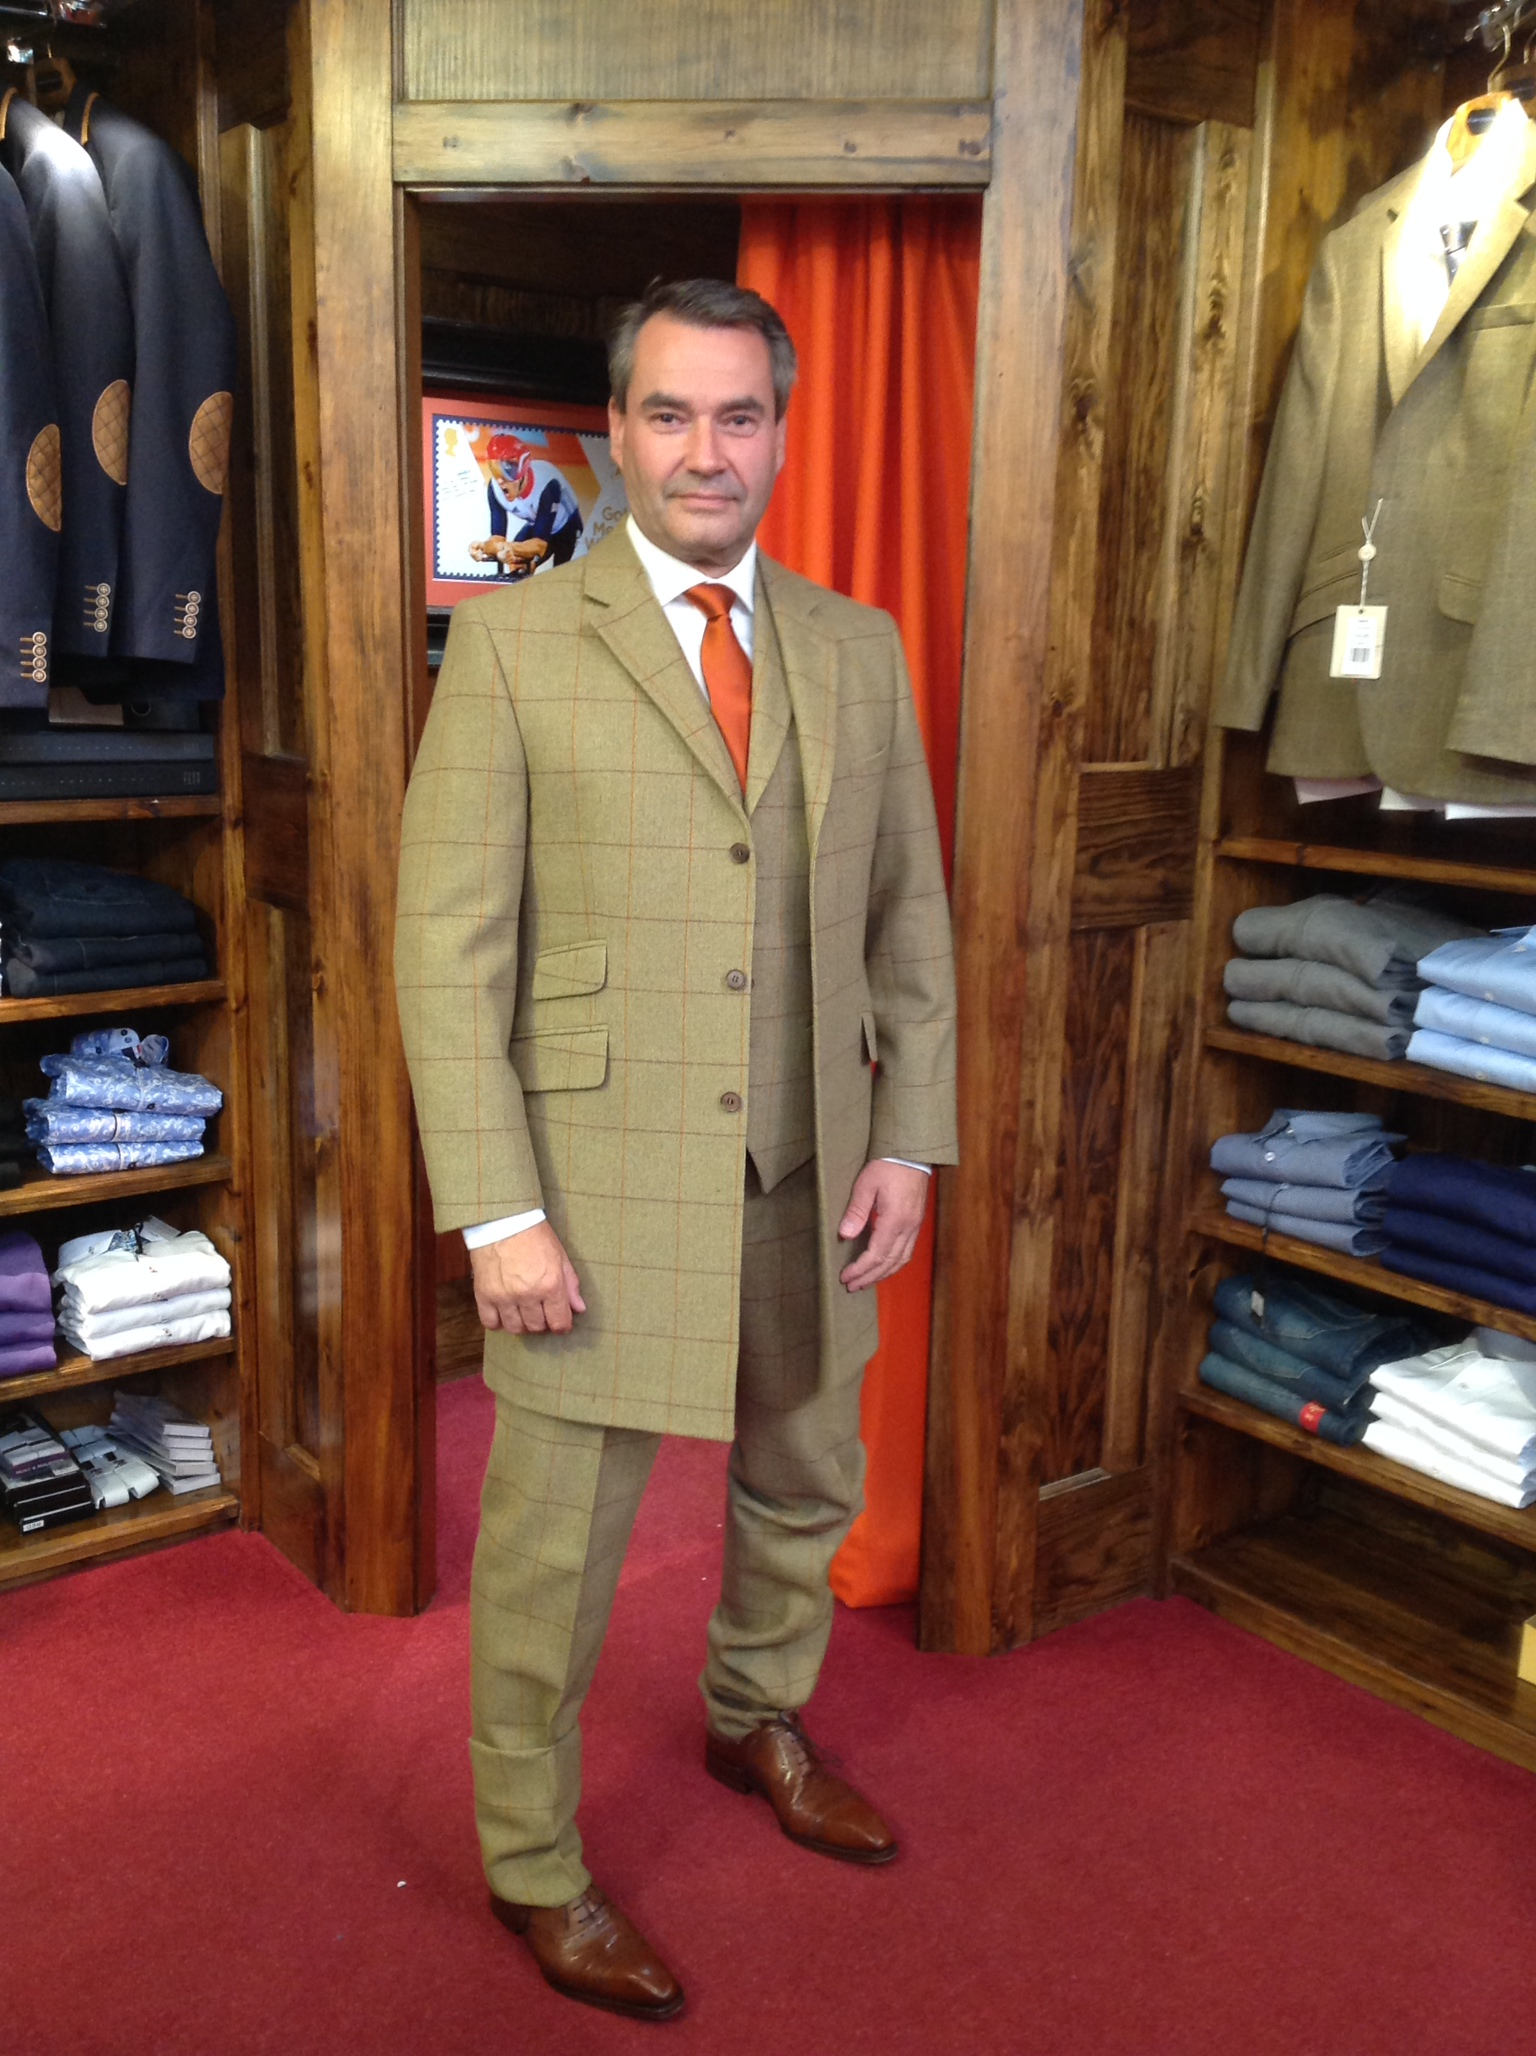 Bespoke Tailoring at its best